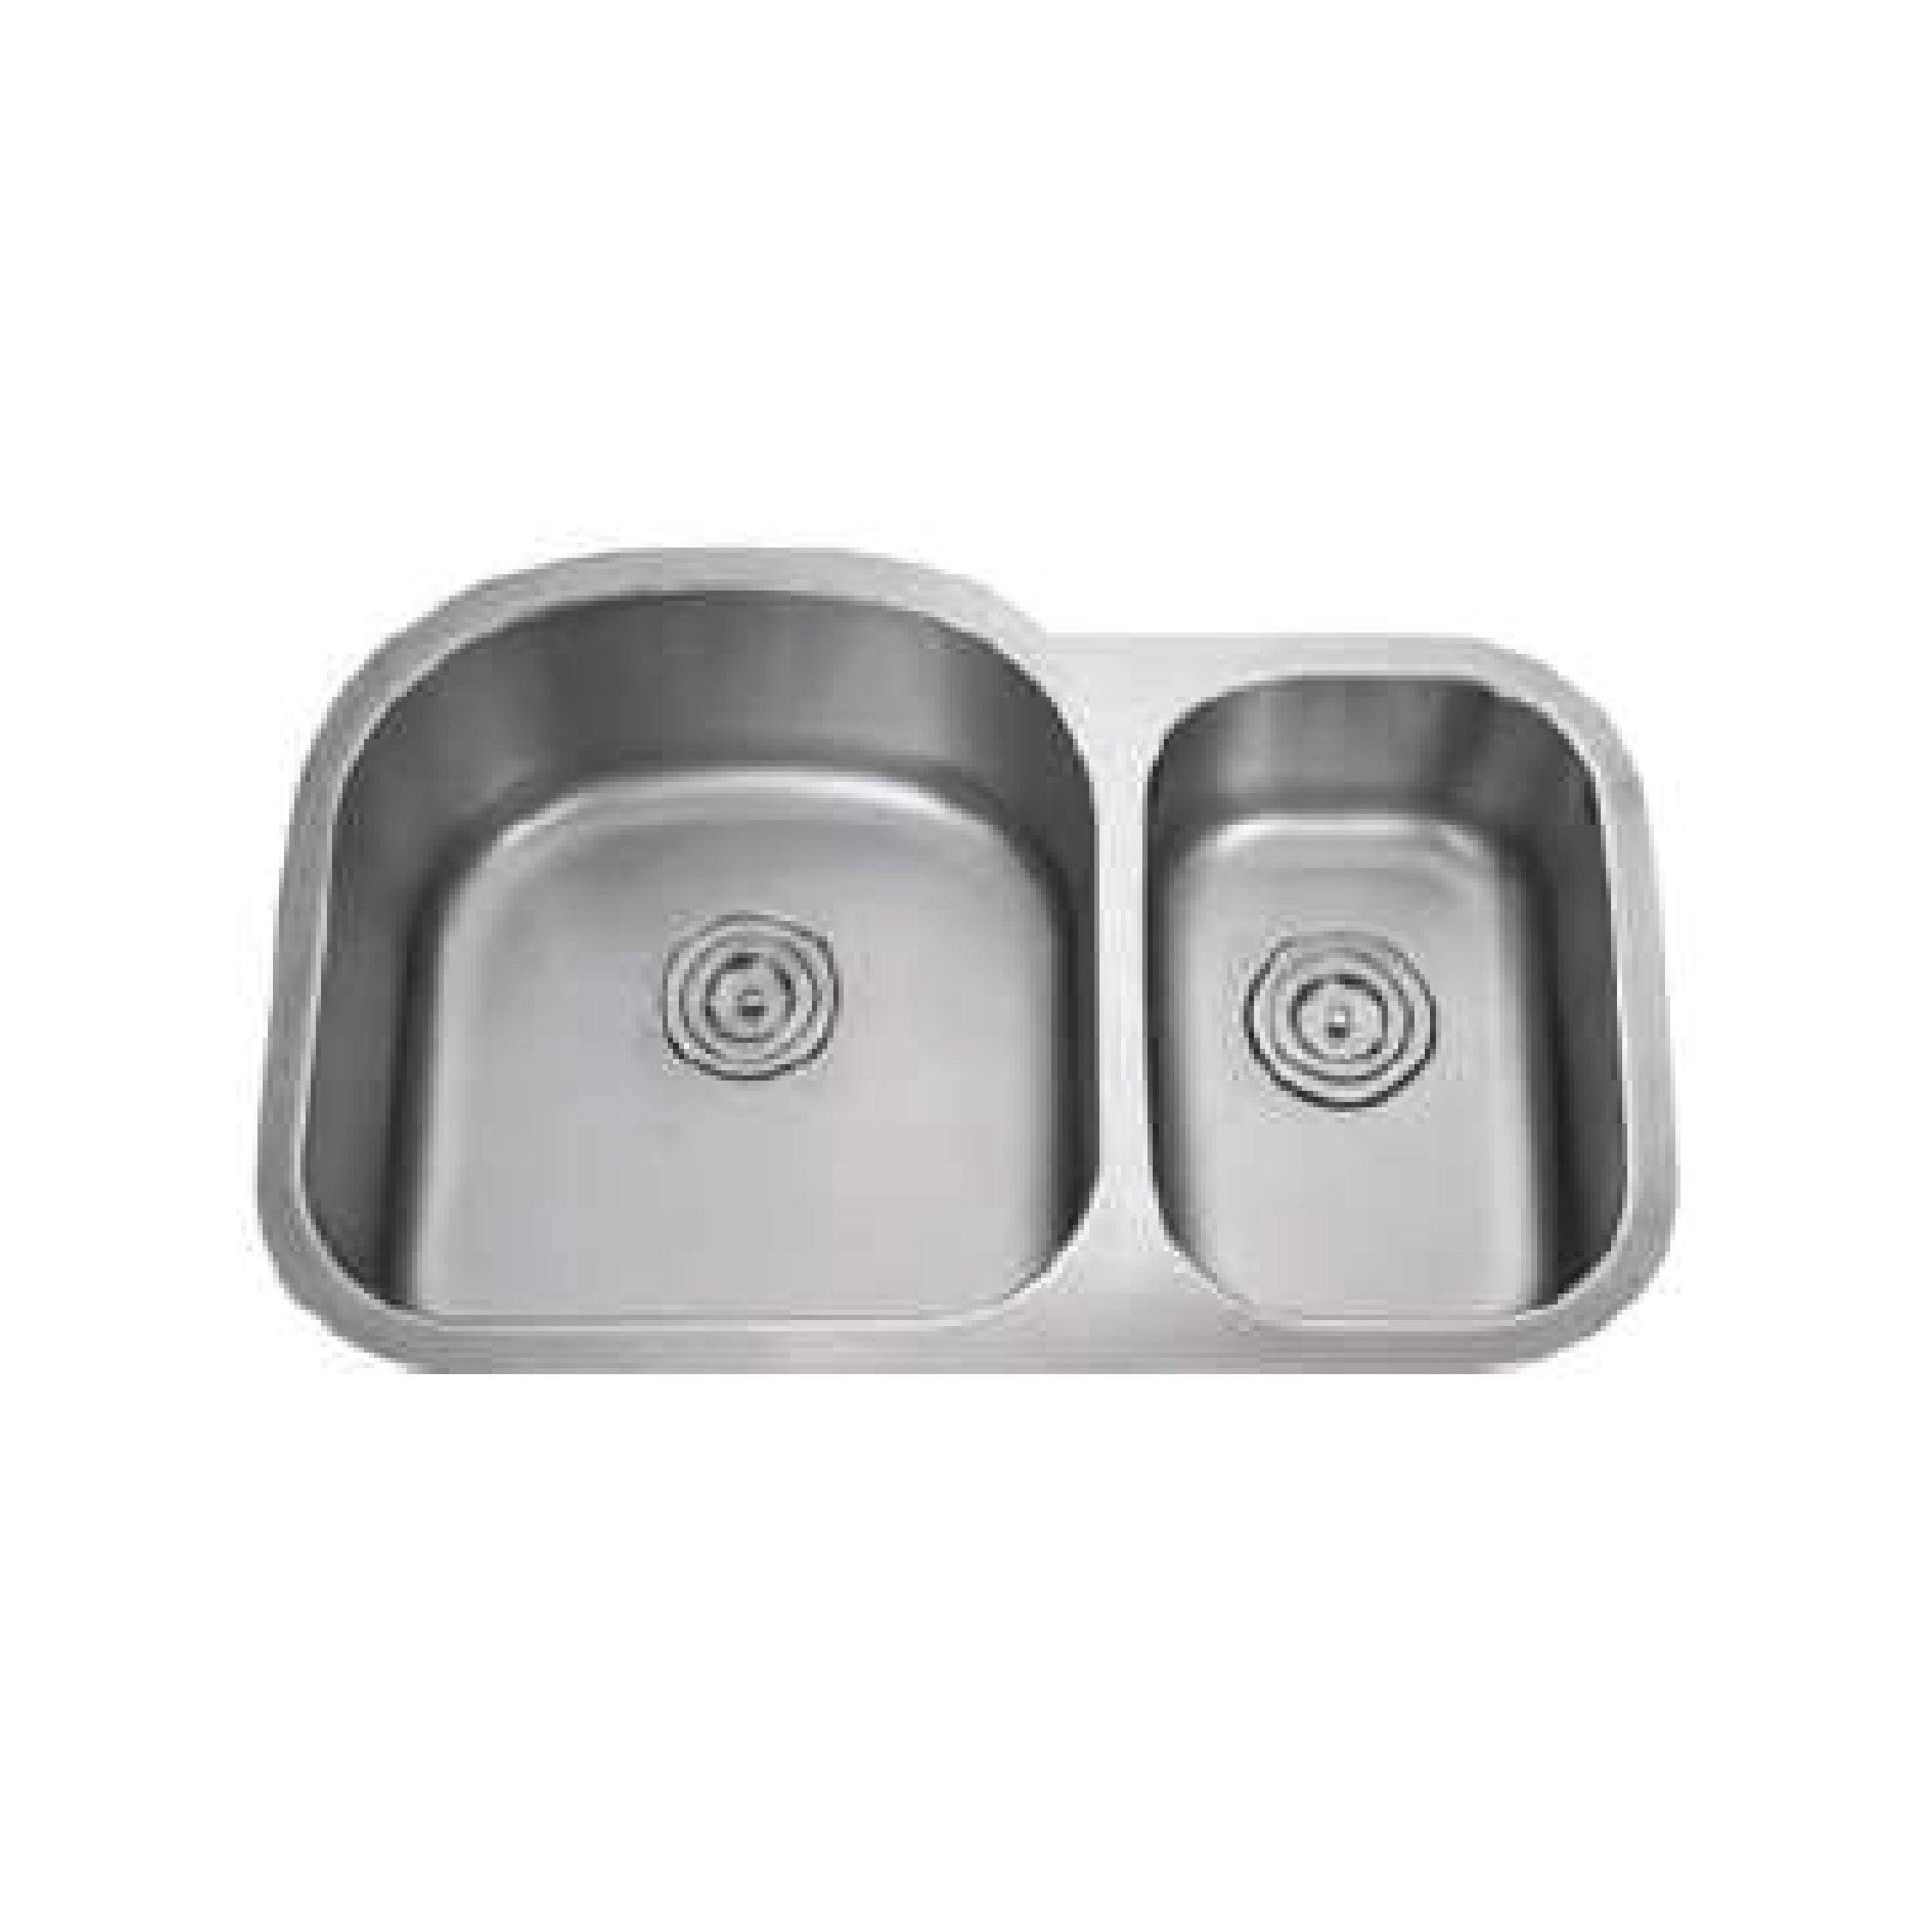 SUS304 Stainless Steel Sink